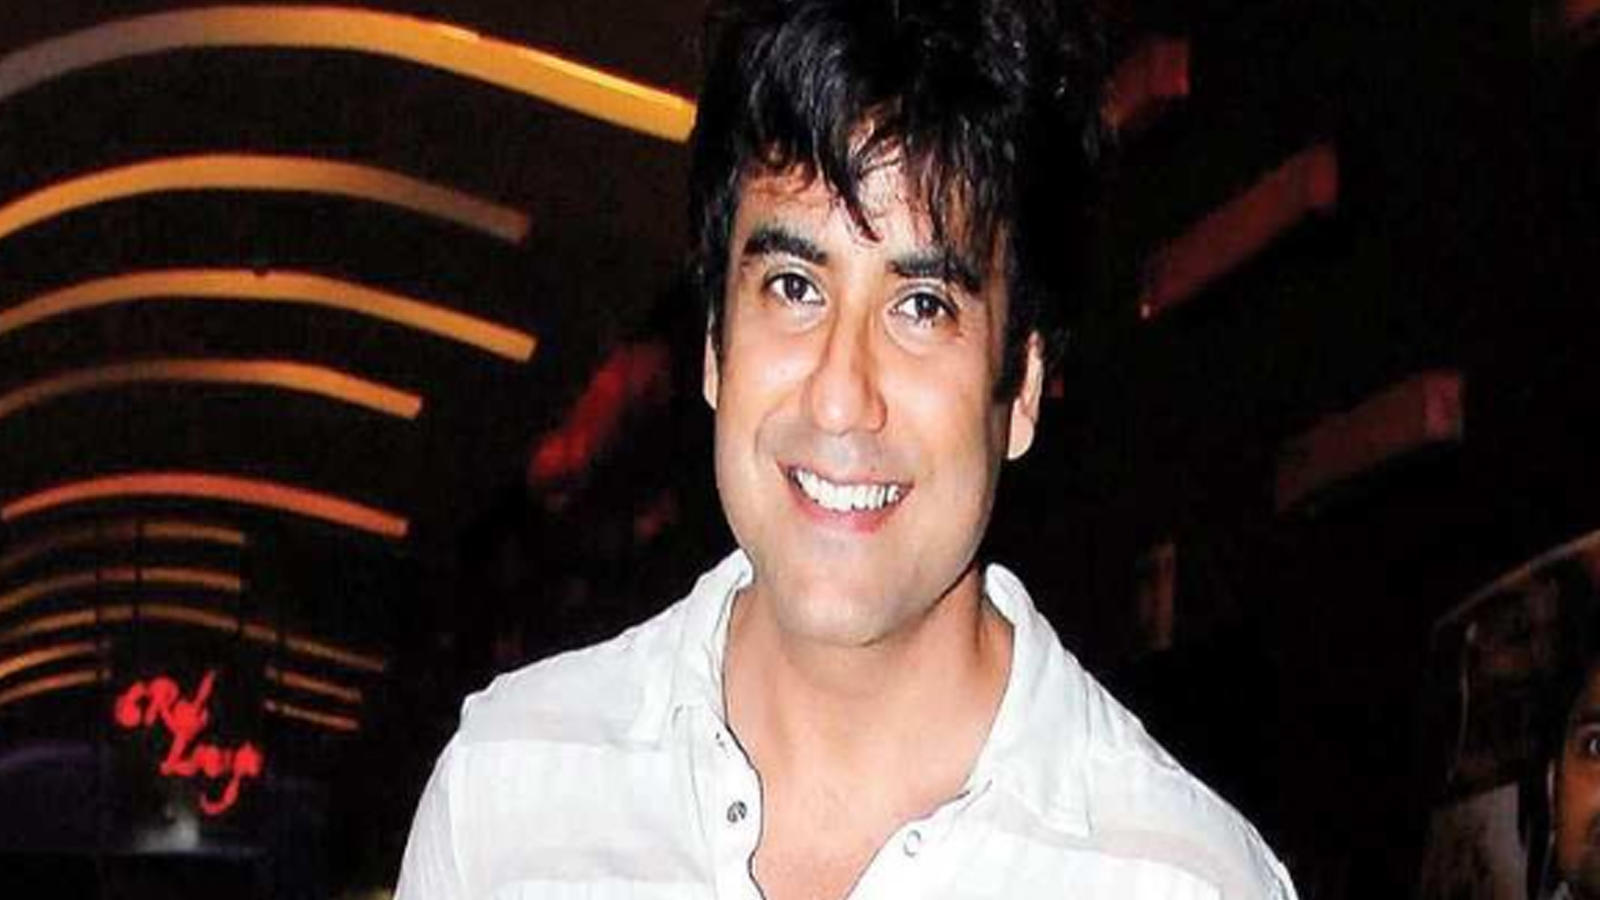 Rape case: Karan Oberoi sent to 14-day judicial custody; lawyer to apply for bail on Friday